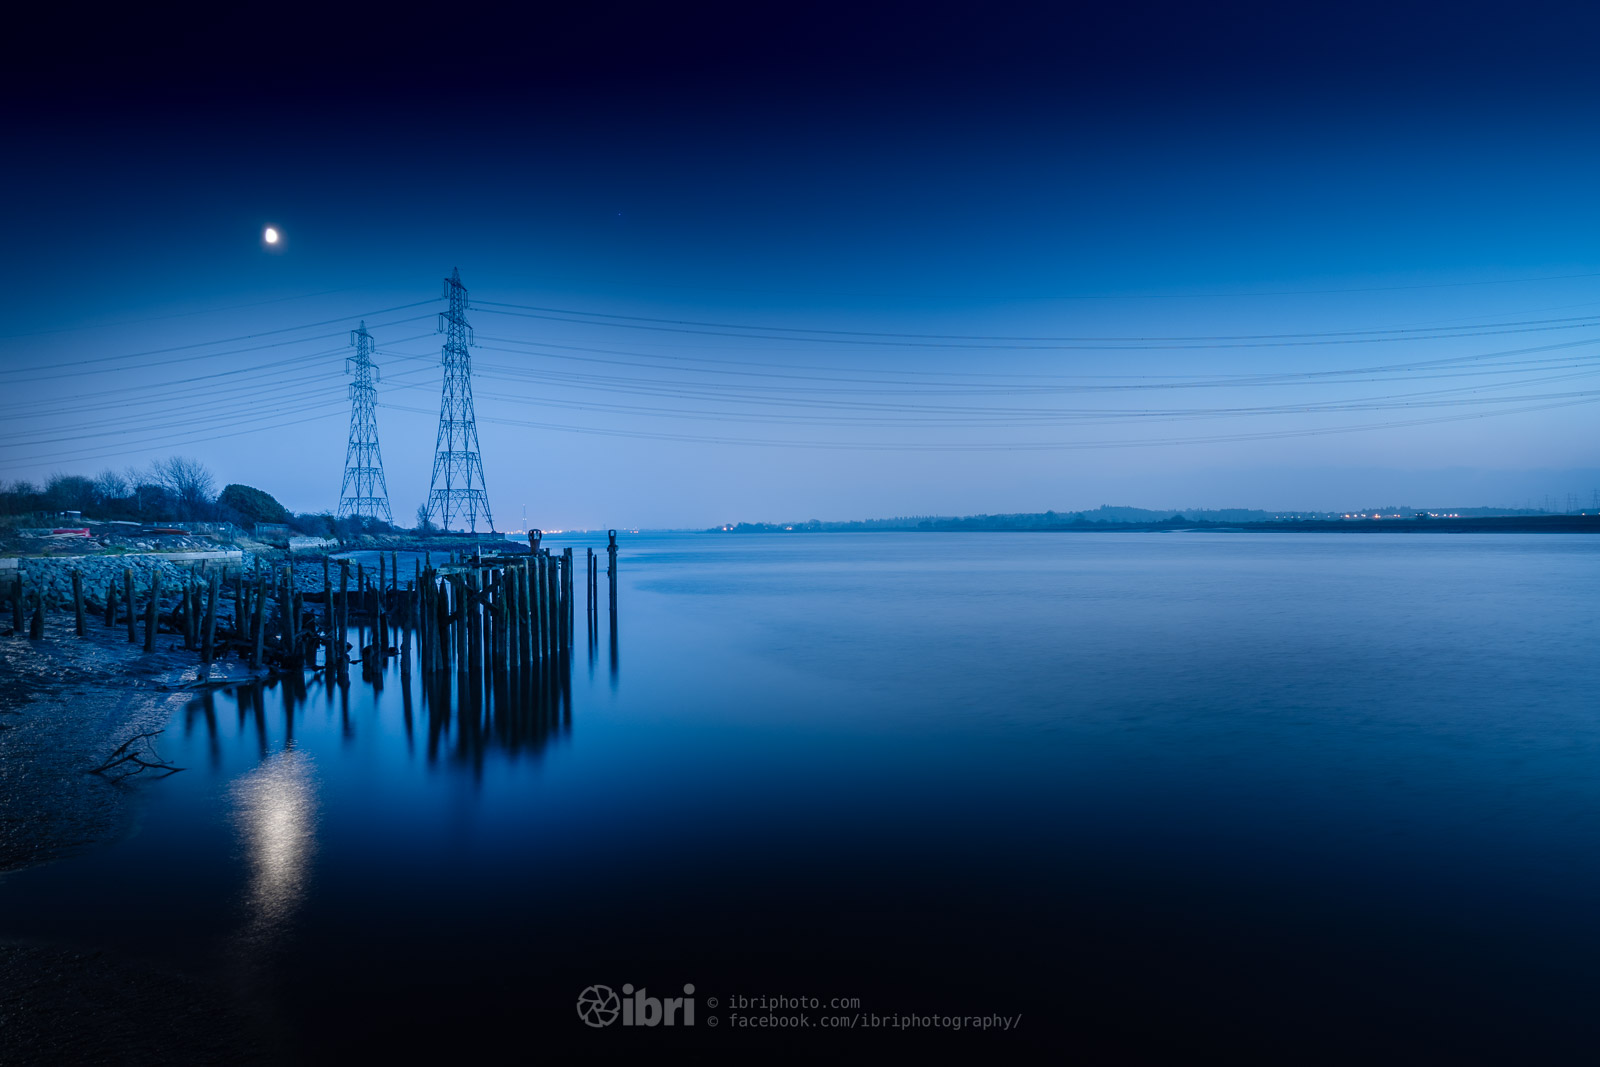 The moody old stumps of the abandoned piers, with the moon and mars sailing over the pylons that hoist electricity over the Forth (Mars is the tiny spec to the right of the moon at the end of the pier).